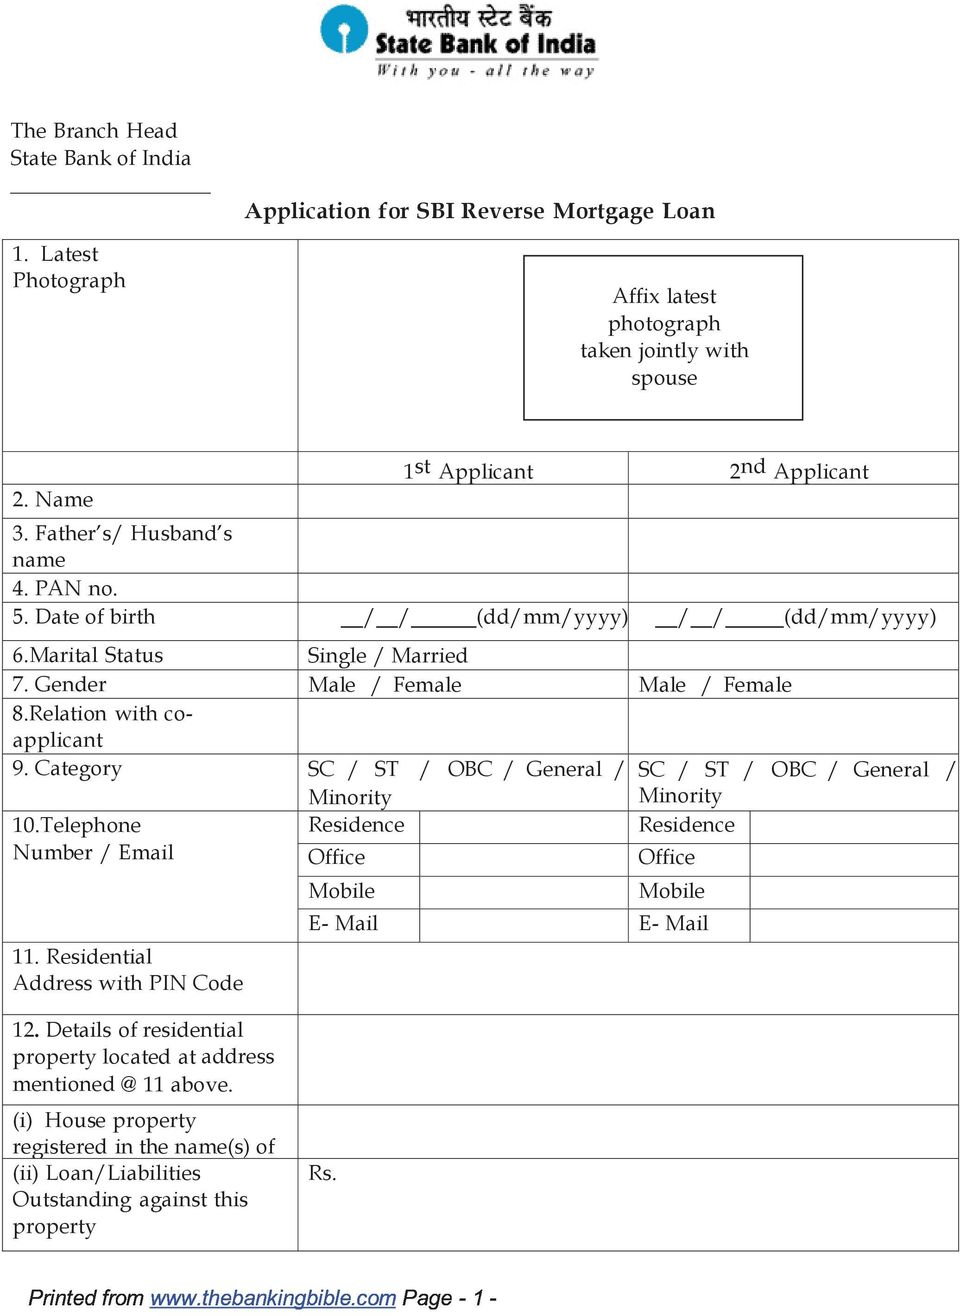 Application for SBI Reverse Mortgage Loan - PDF